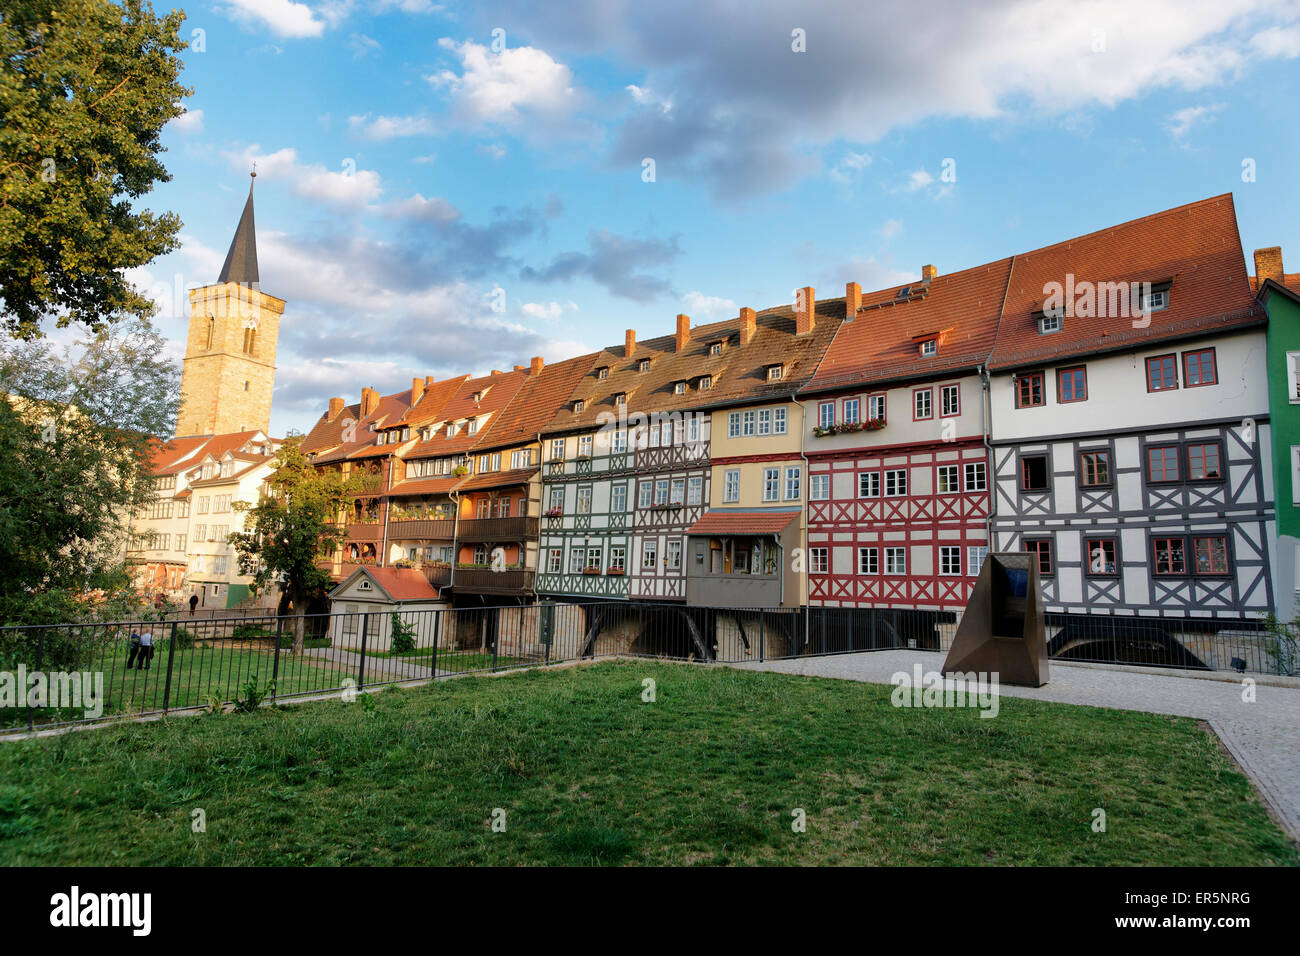 Kraemerbruecke with half-timbered buildings, Erfurt, Thuringia, Germany - Stock Image